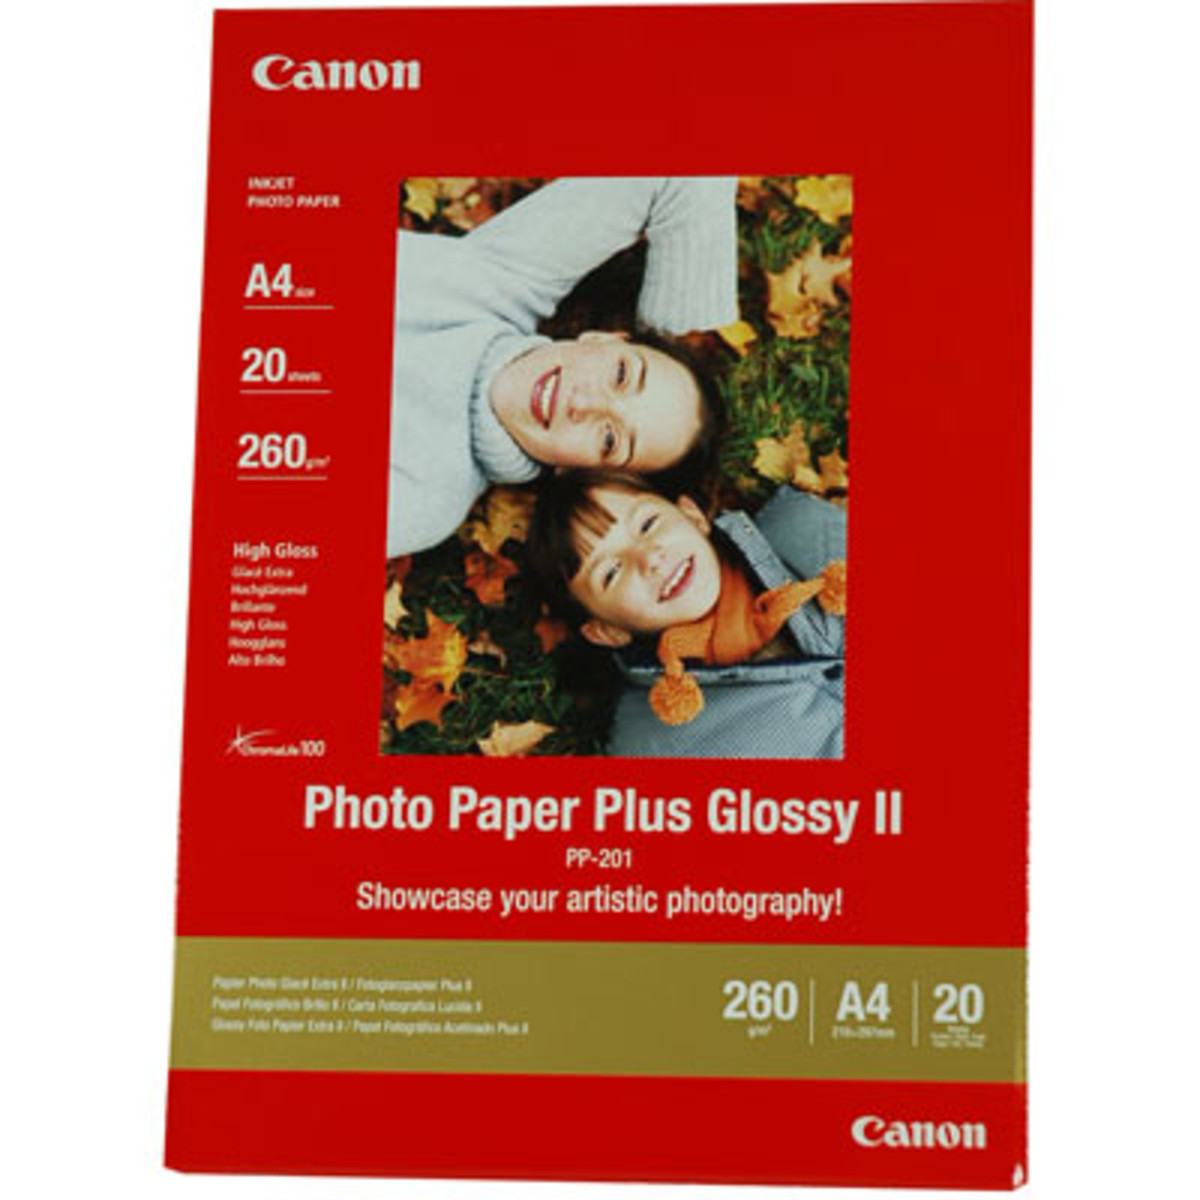 Canon Glossy II Photo Paper Plus (A4 260gsm)